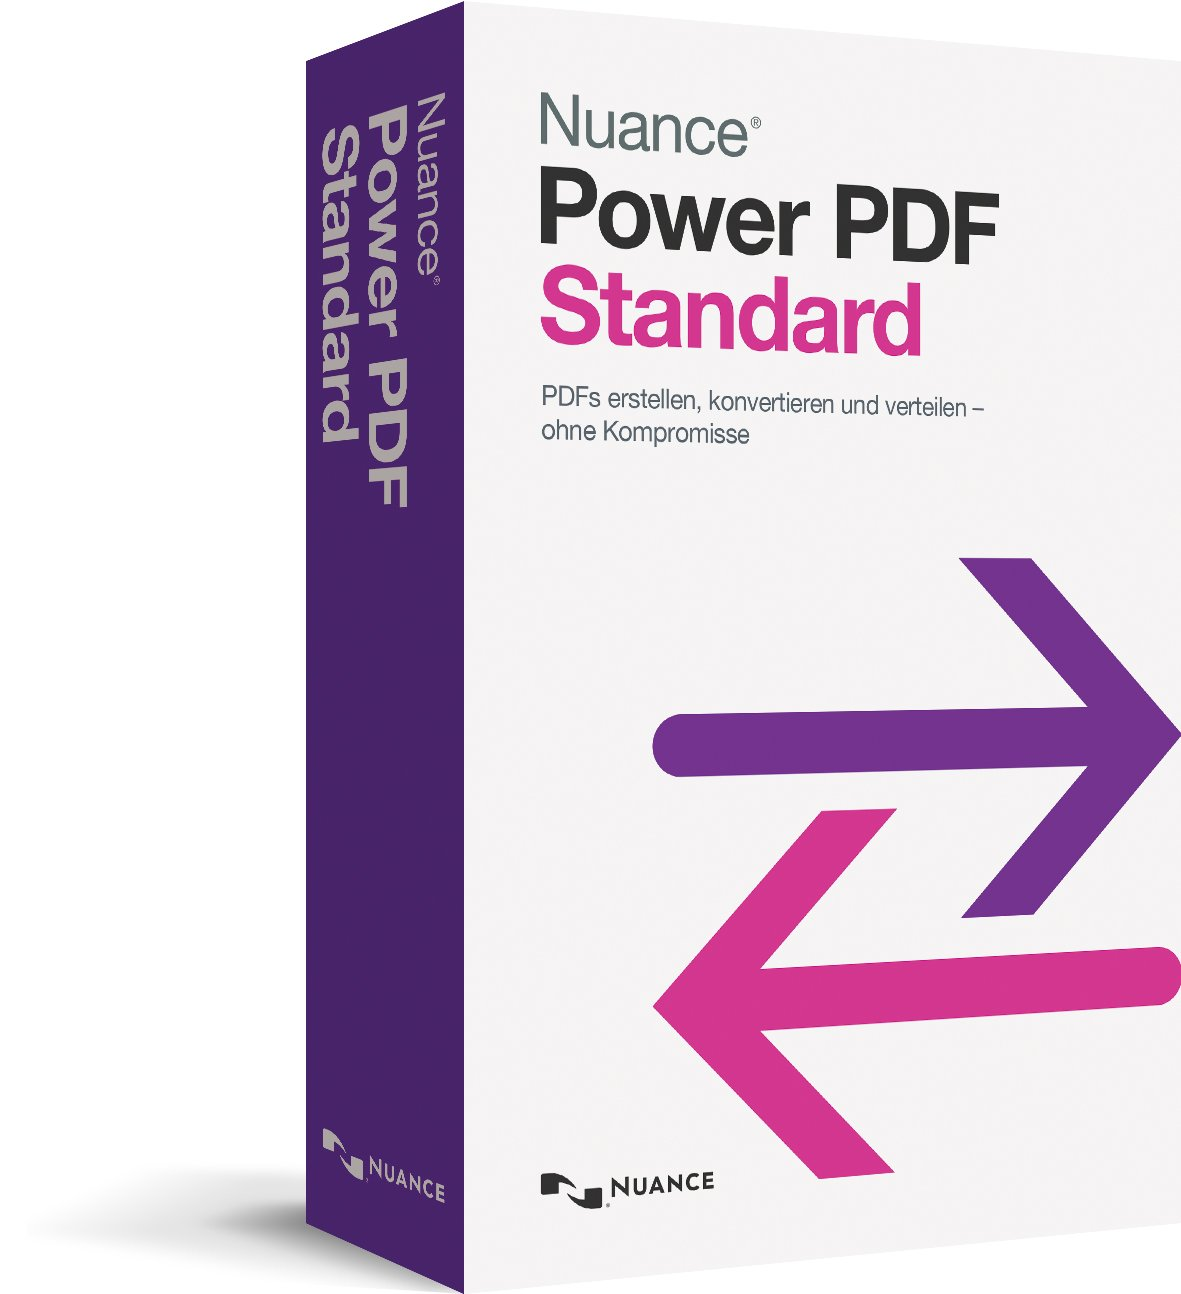 Nuance Power PDF Standard: Amazon.de: Software